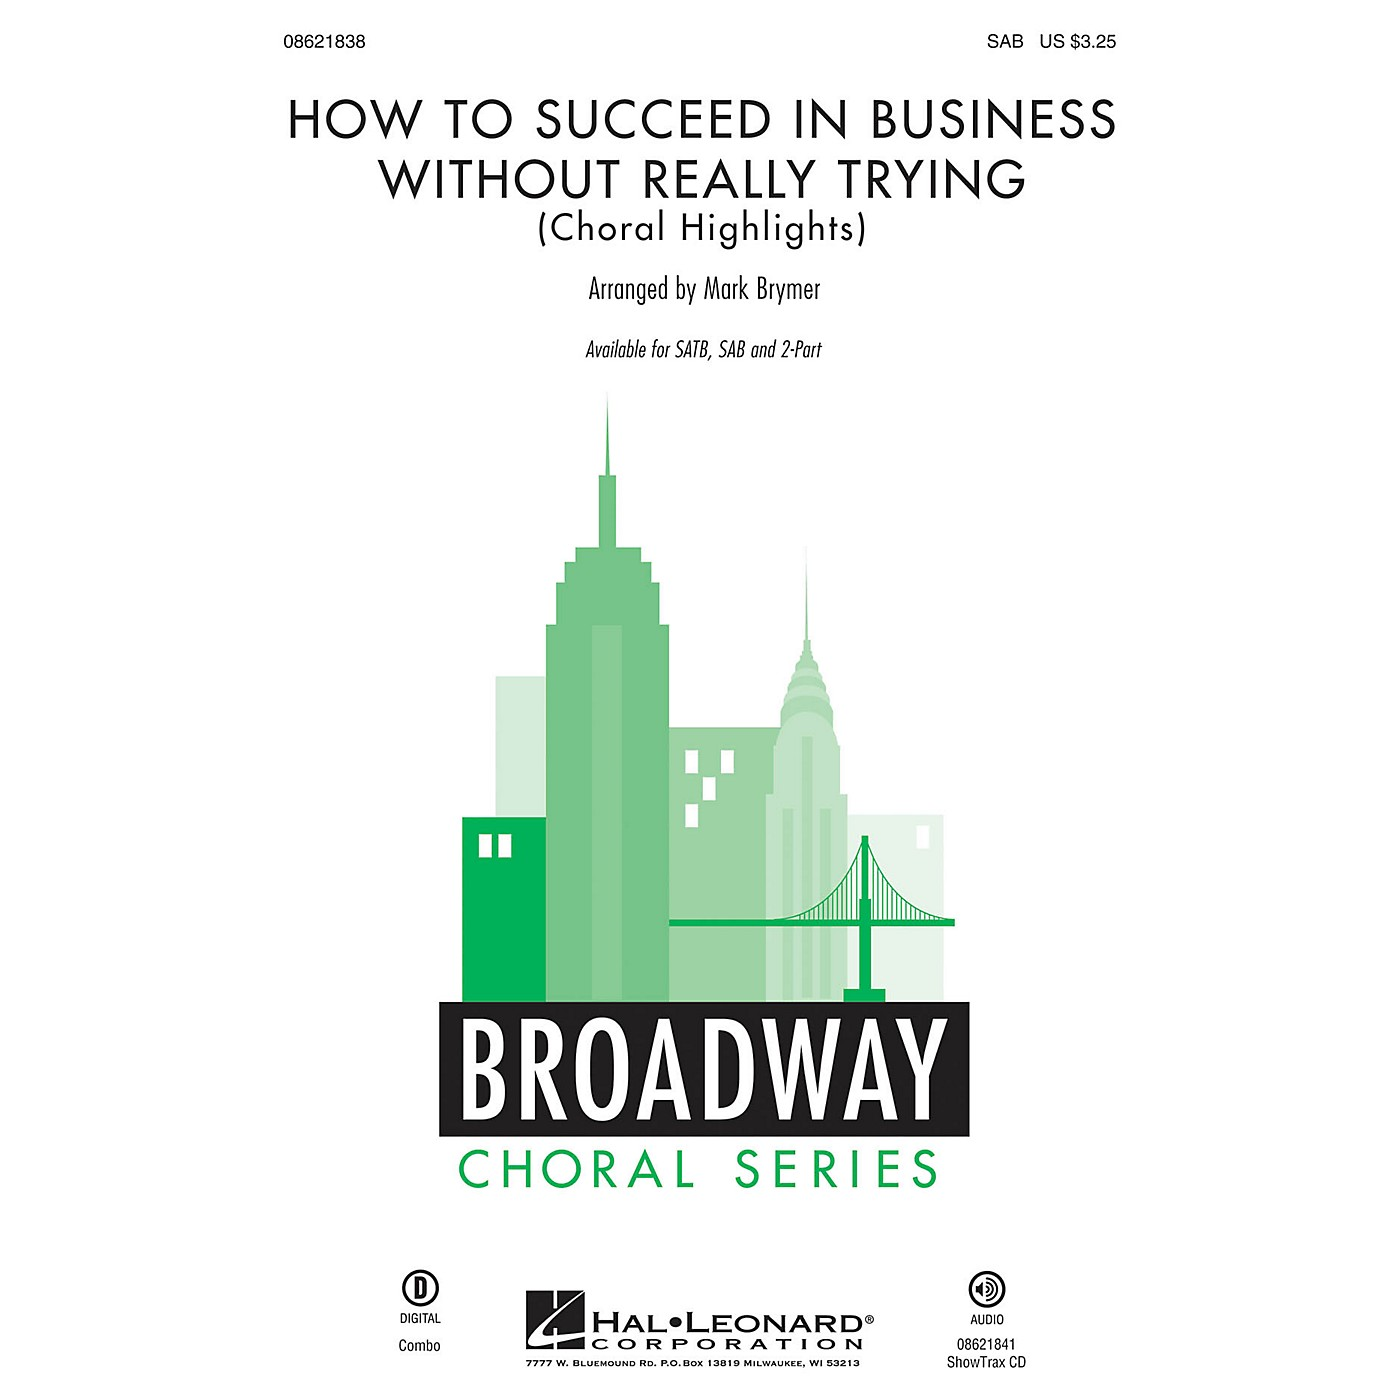 Hal Leonard How to Succeed in Business Without Really Trying (Choral Highlights) SAB arranged by Mark Brymer thumbnail